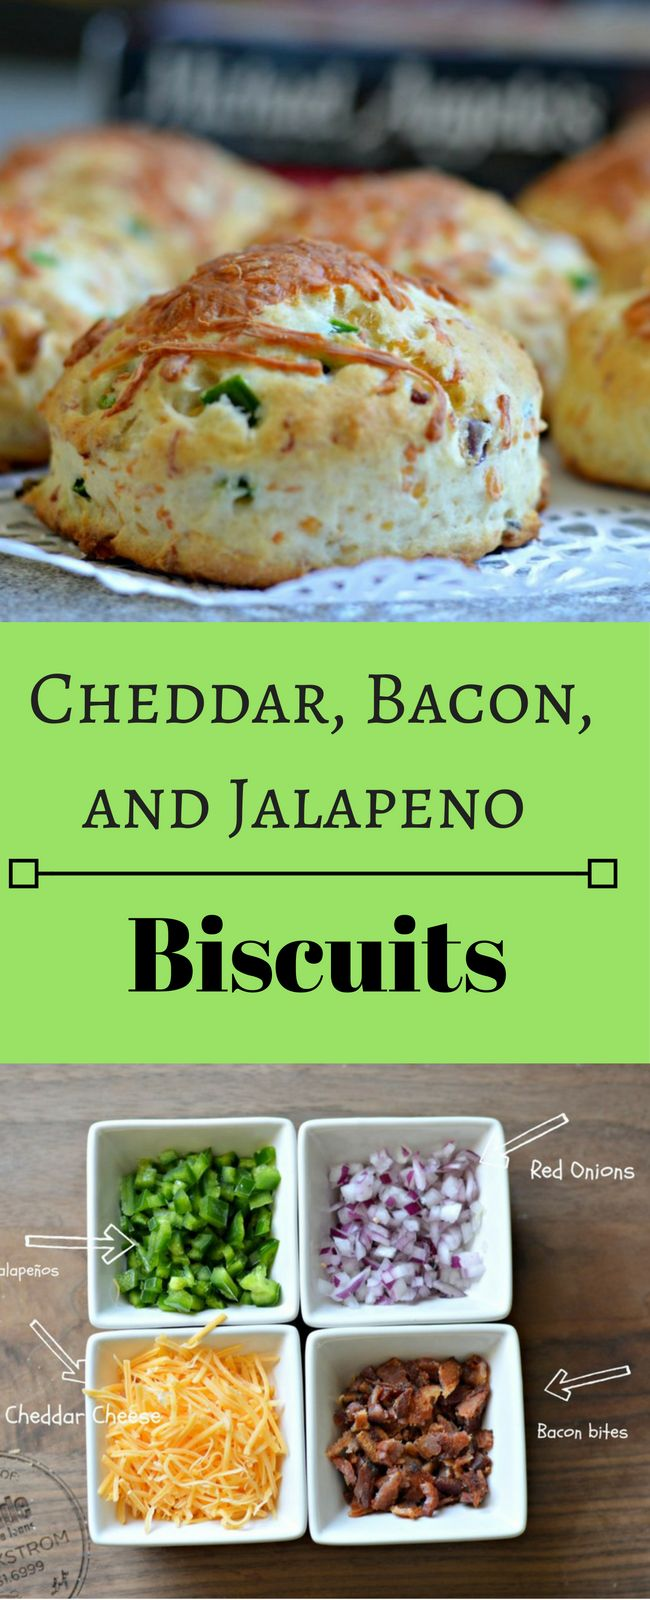 These Cheddar, Bacon, and Jalapeno biscuits are delicious and go ...